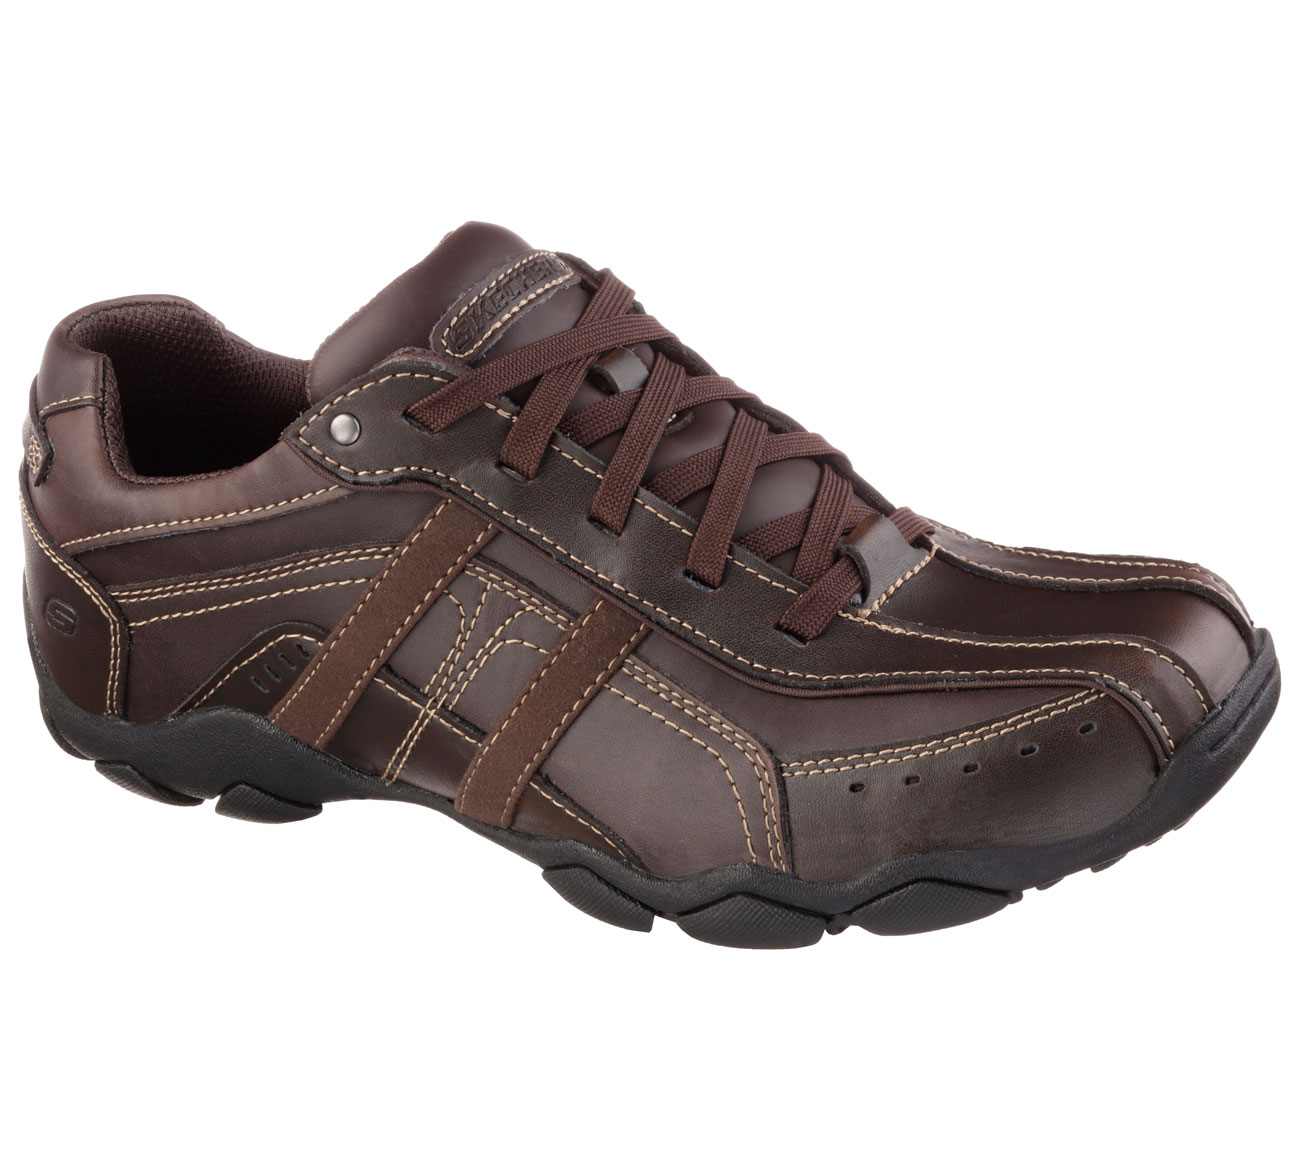 Sketchers Shoes Girls Canada